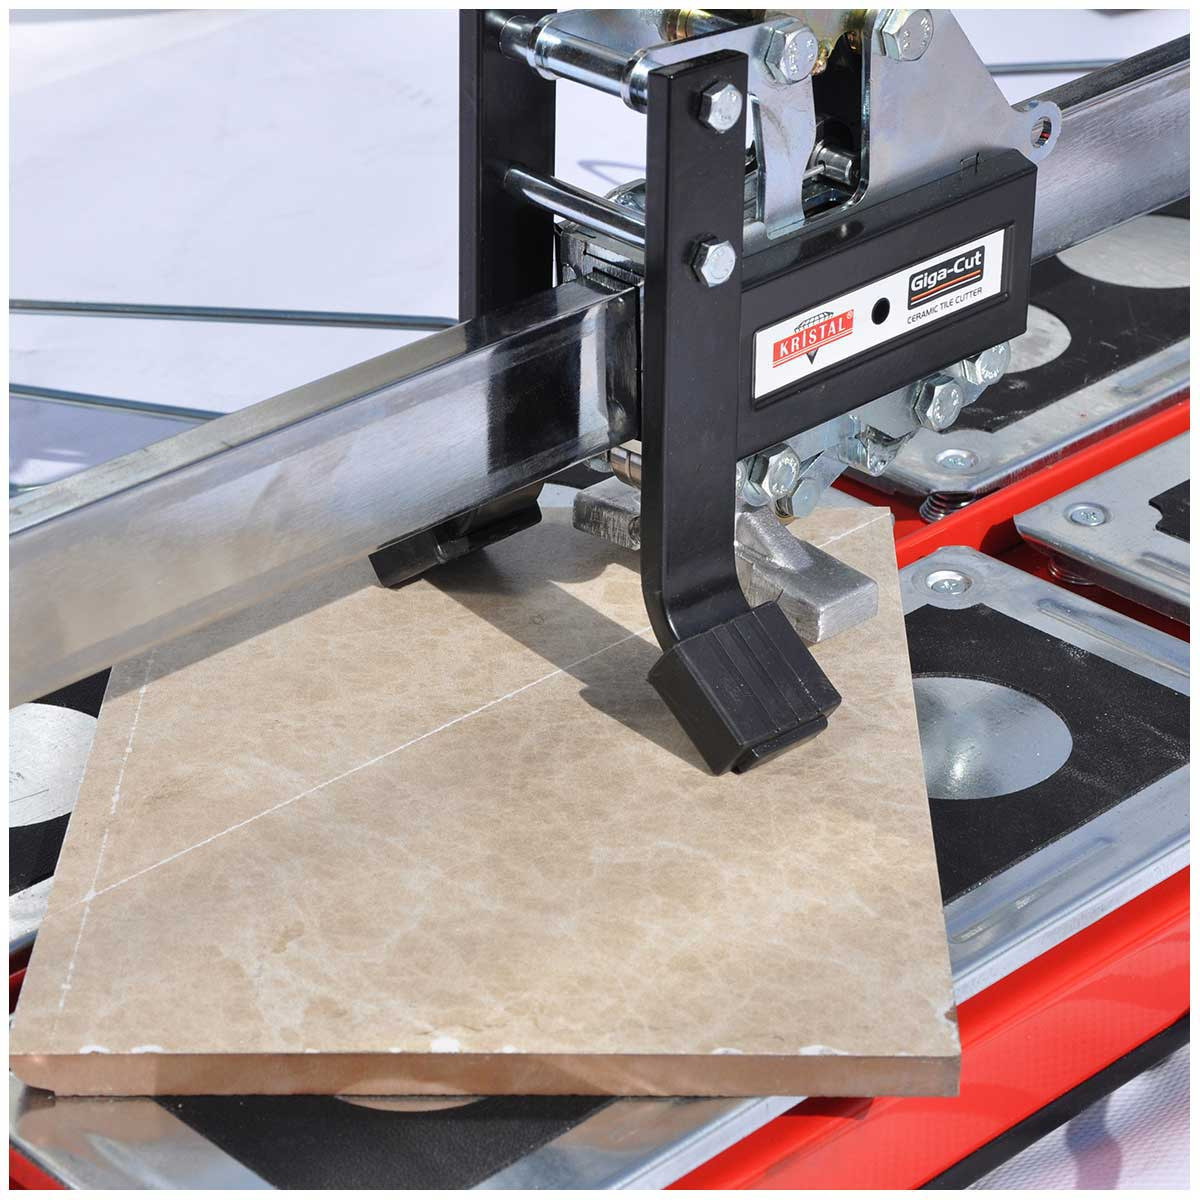 Kristal porcelain Tile Cutter cut